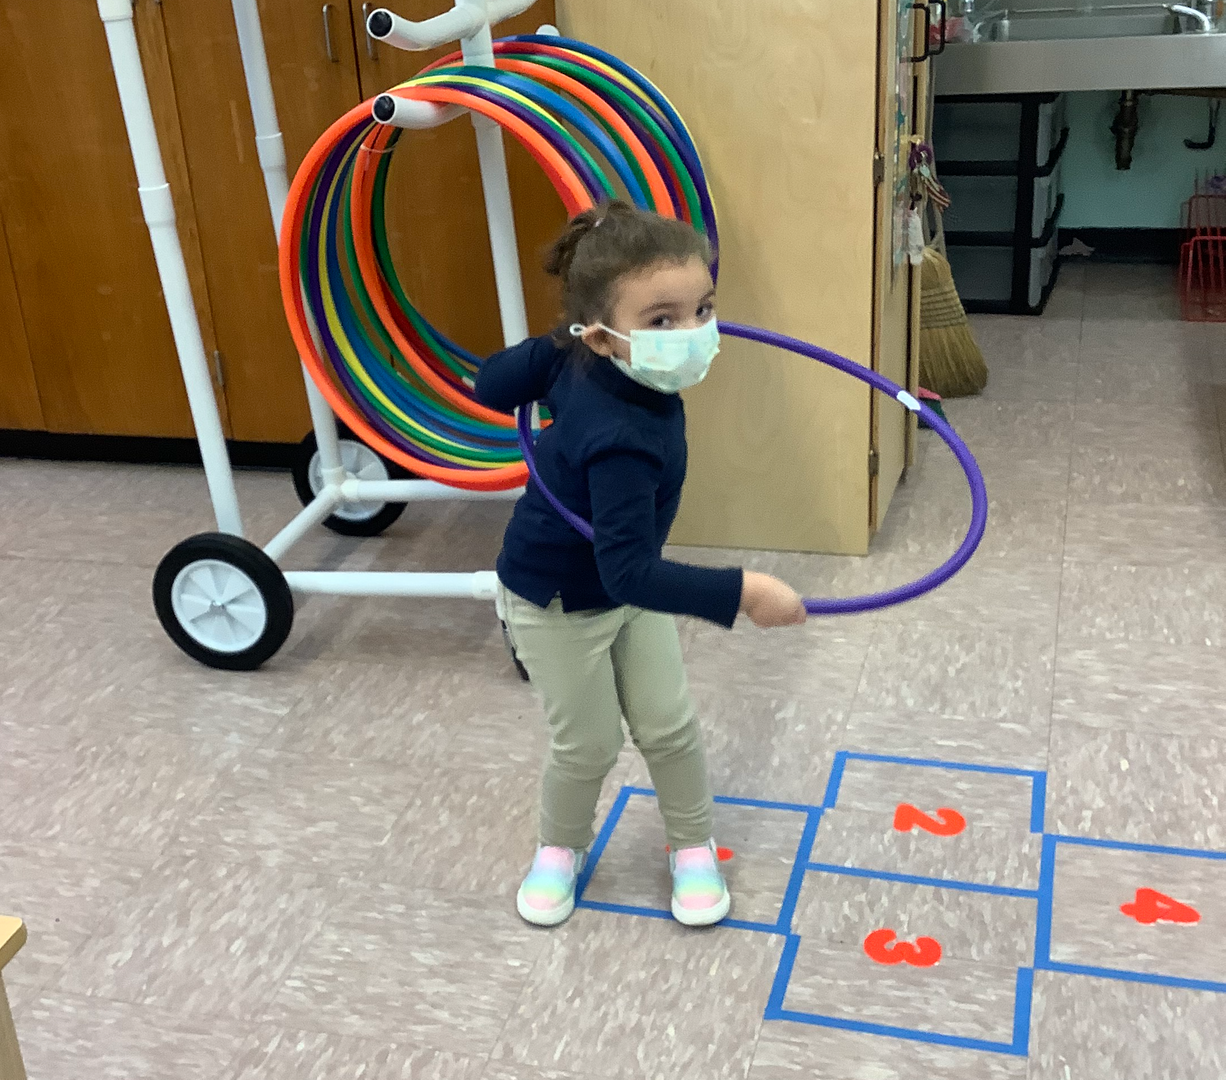 a student in a mask with a hula hoop